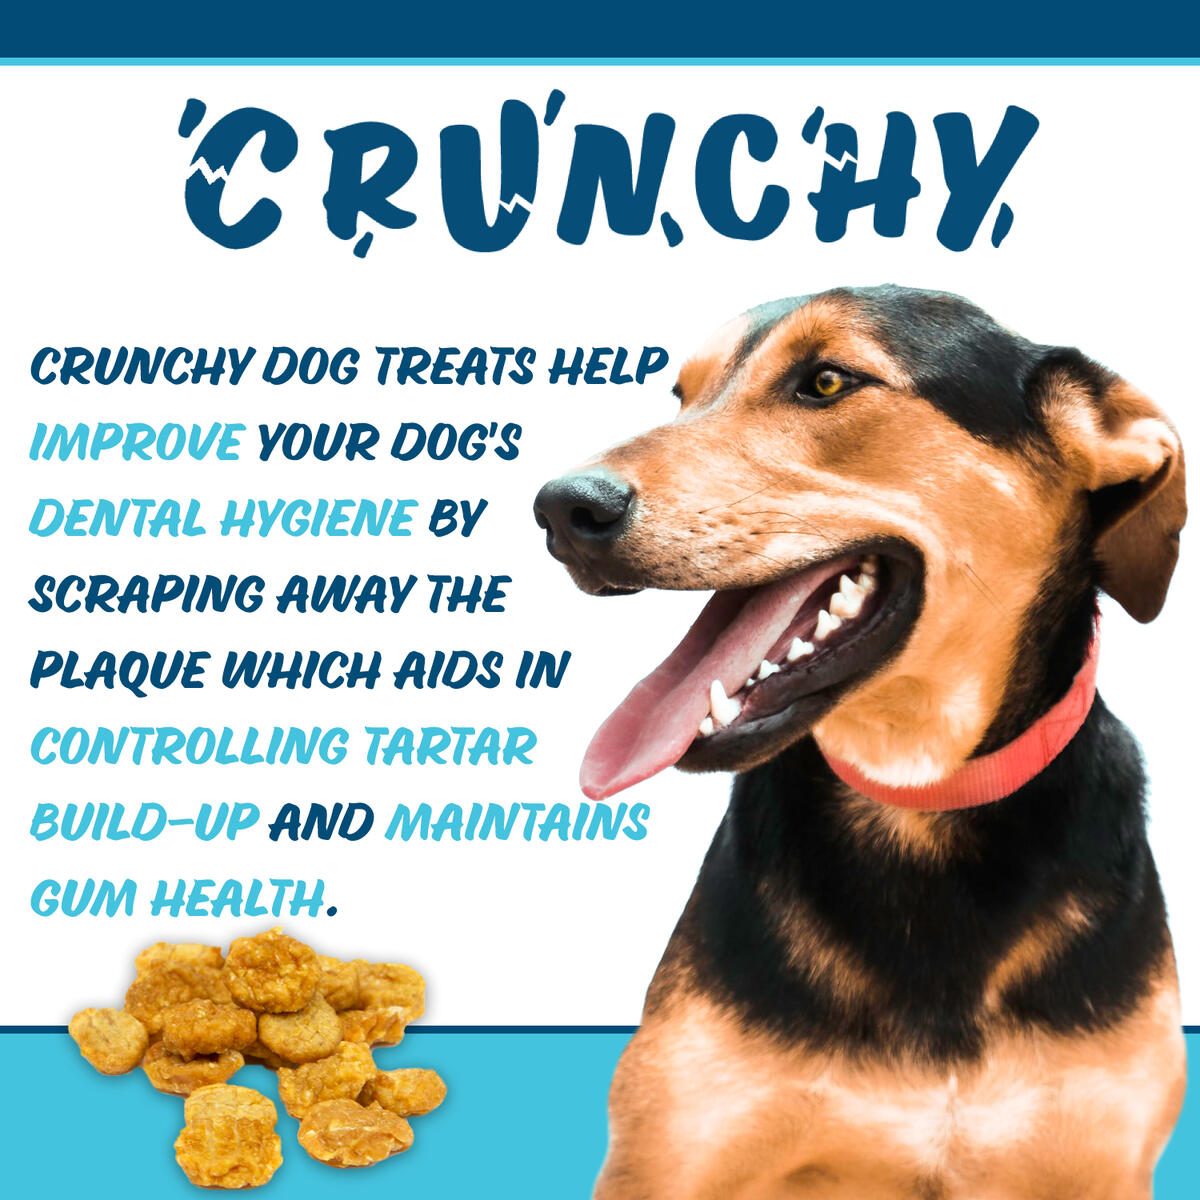 Texas Pet Company Jerky Crunchy Bits Dog Treats - Single Ingredient - for Toy-Small Dogs - Made in The USA - 13.5oz resealable jar